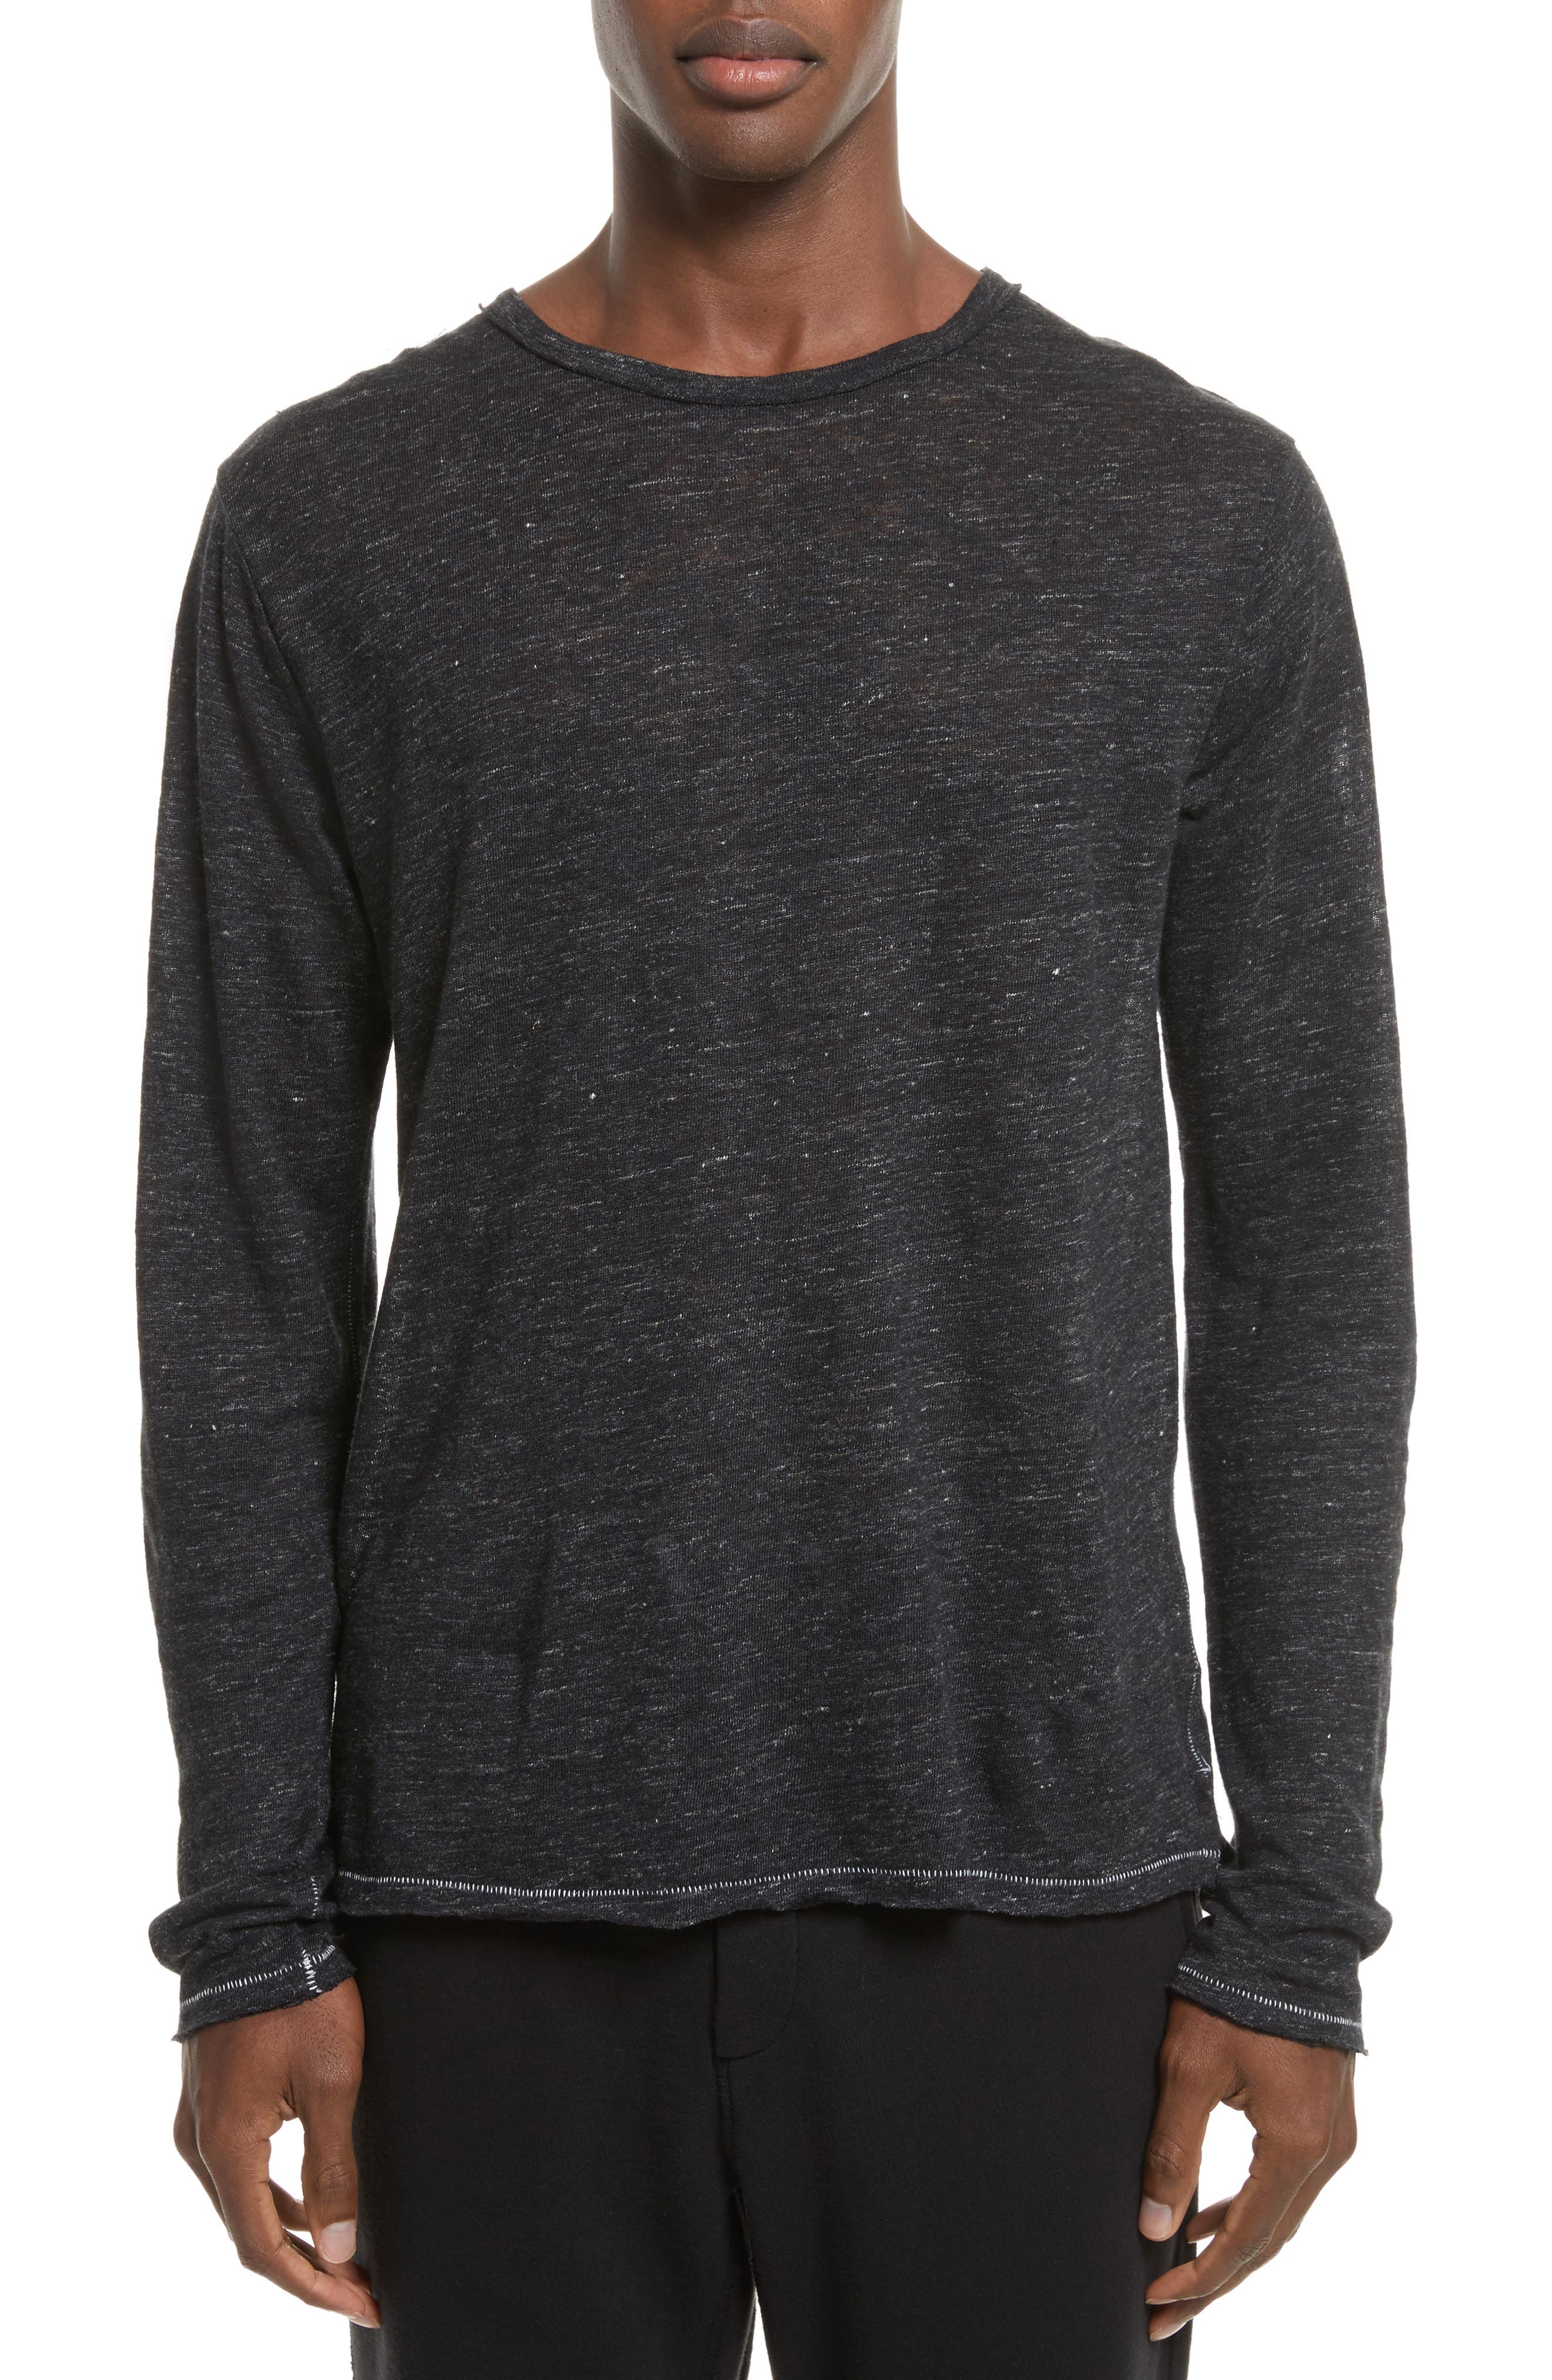 Owen Linen Long Sleeve T-Shirt,                             Main thumbnail 2, color,